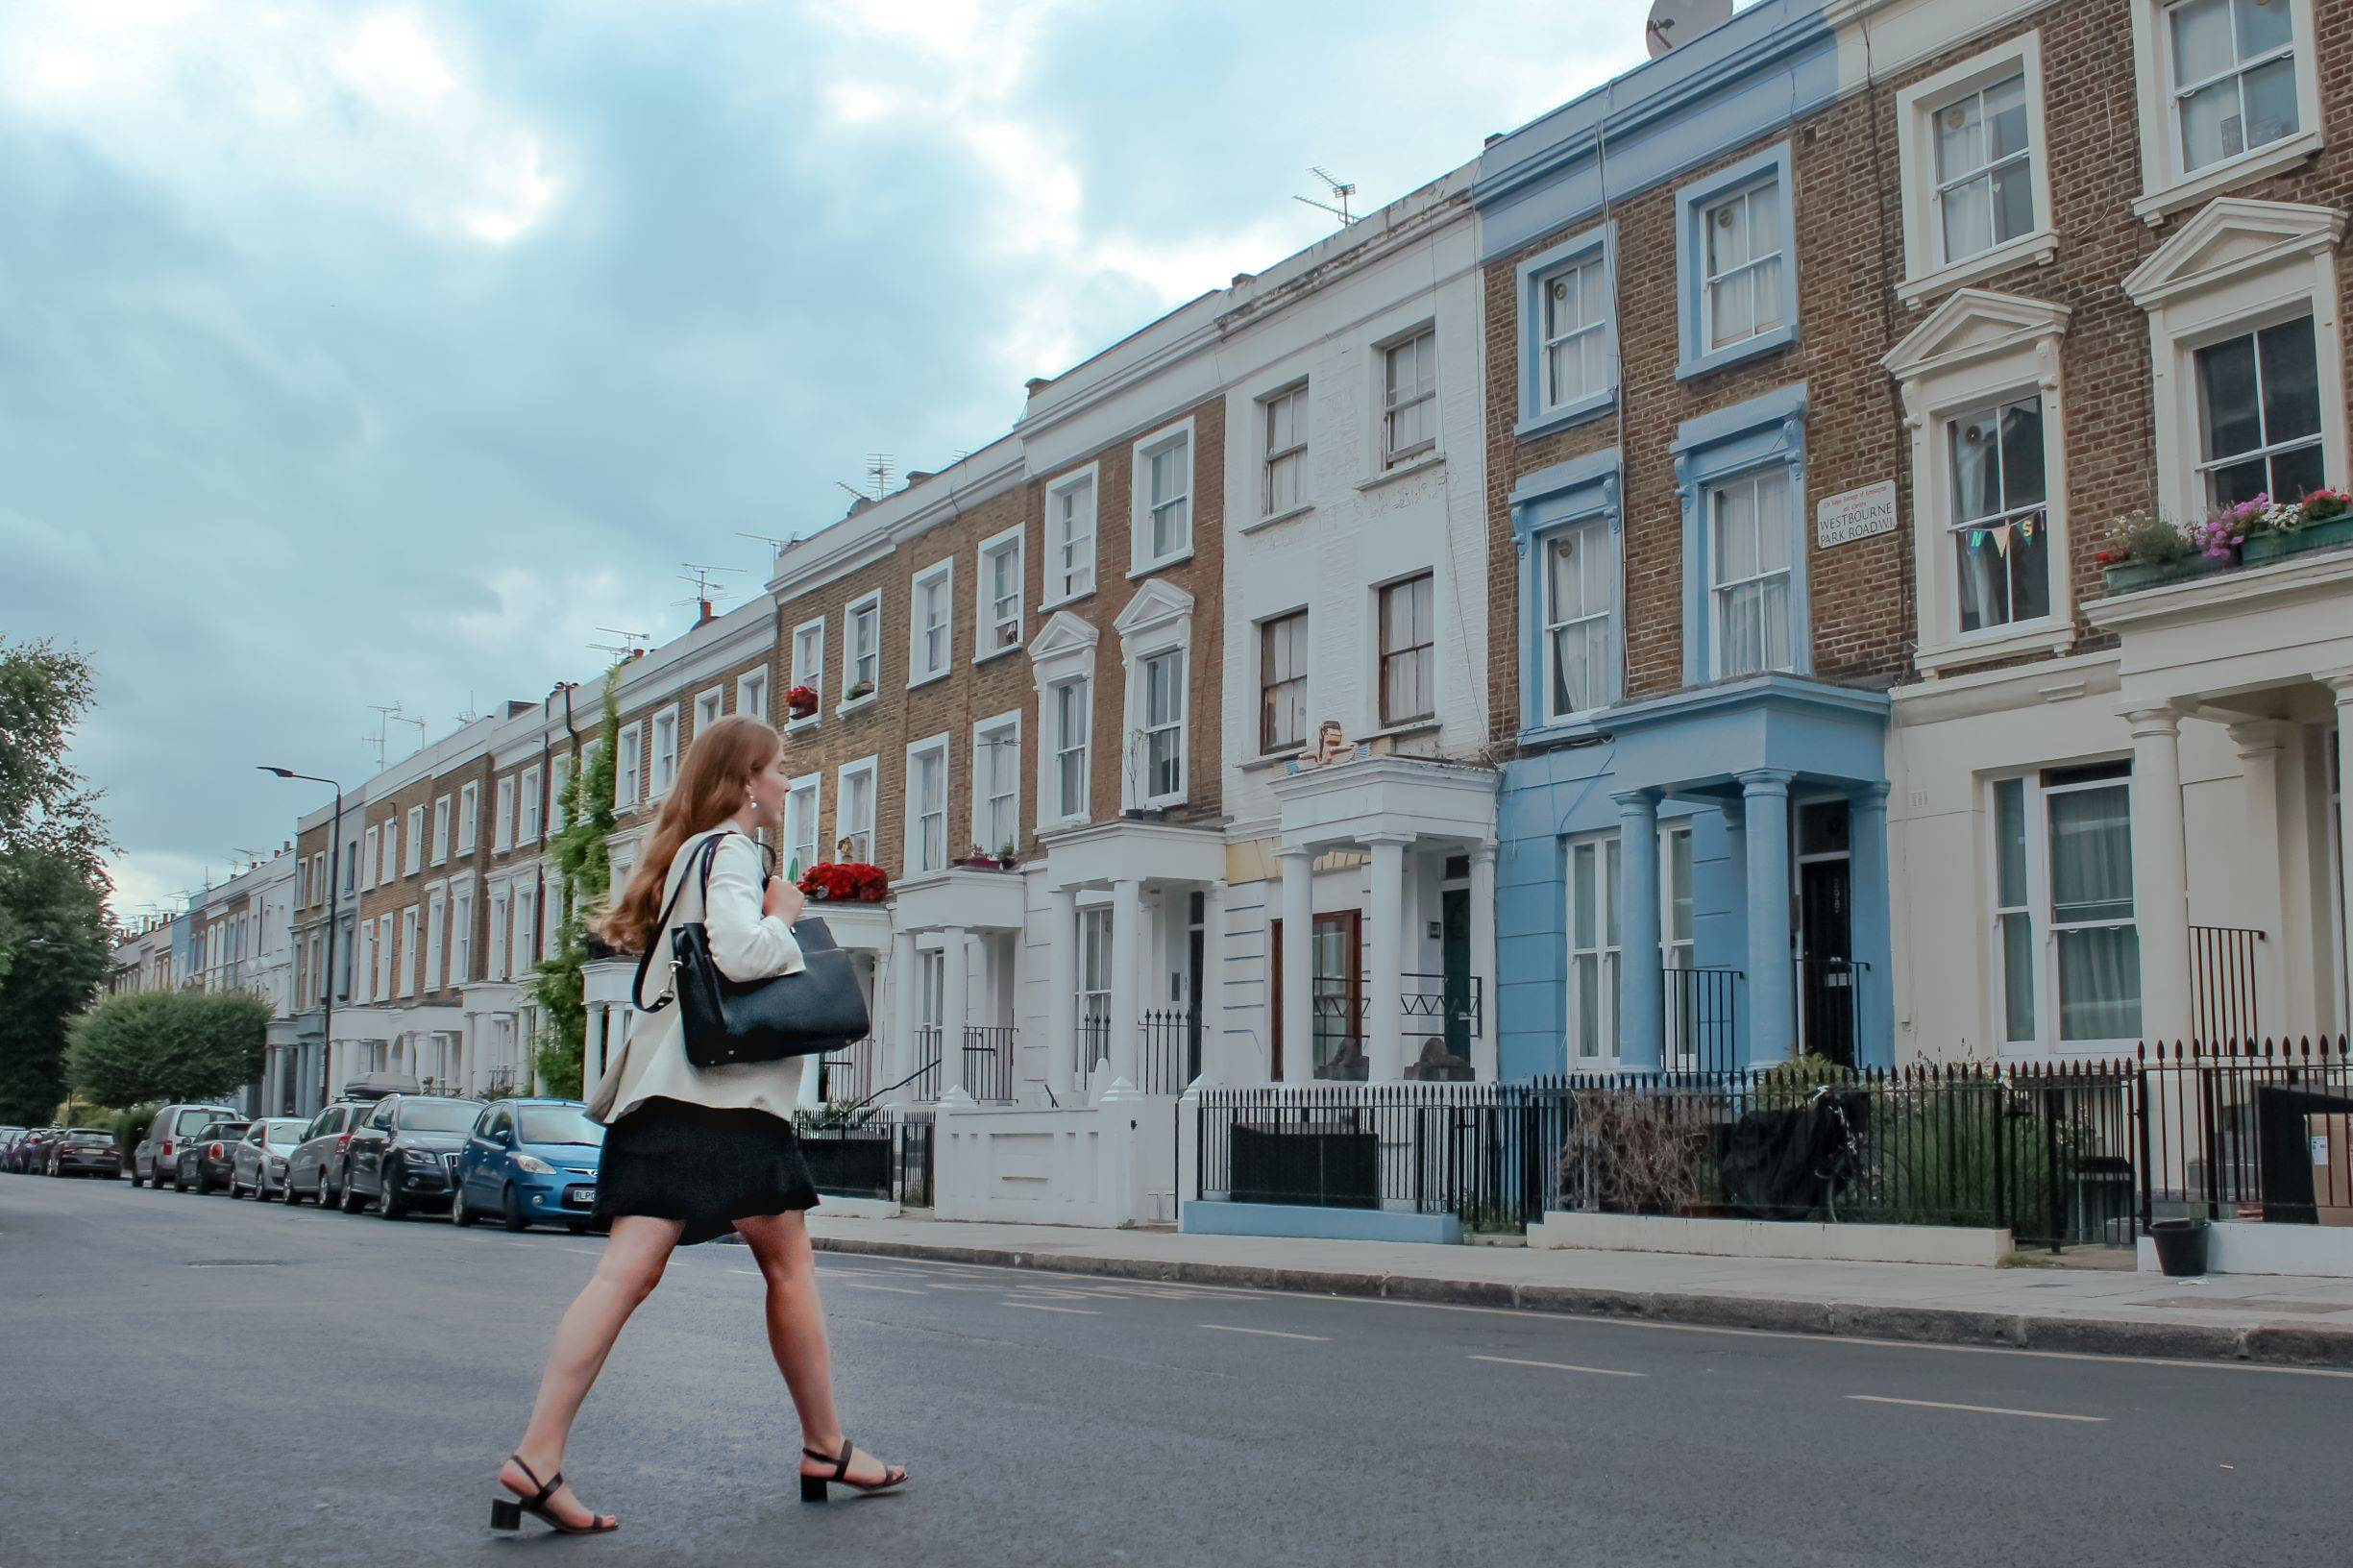 Business women crossing the street carrying a shoulder bag in Notting Hill